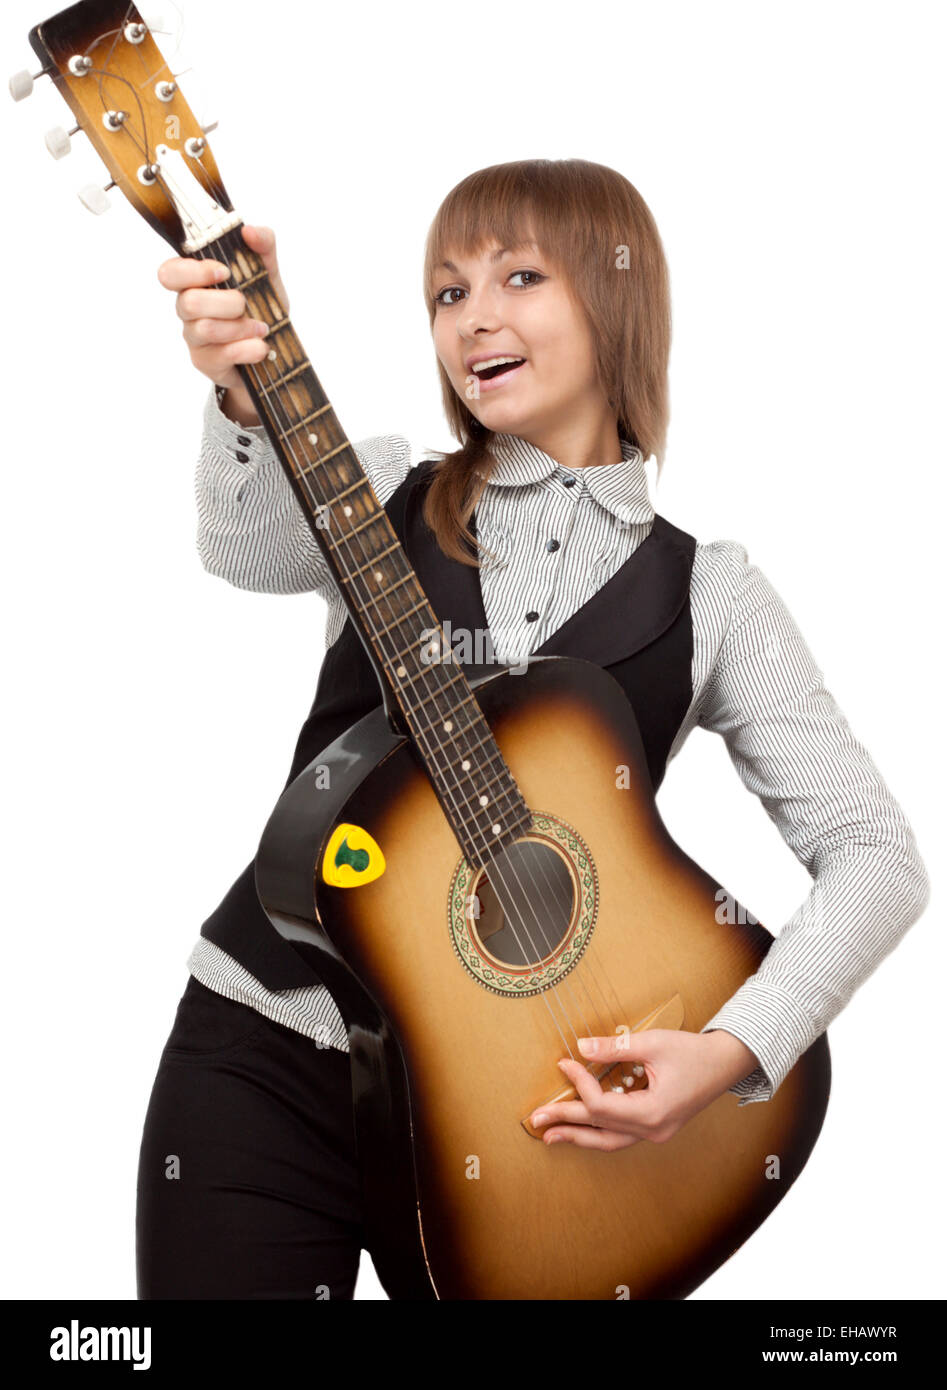 Young girl with guitar sings - Stock Image